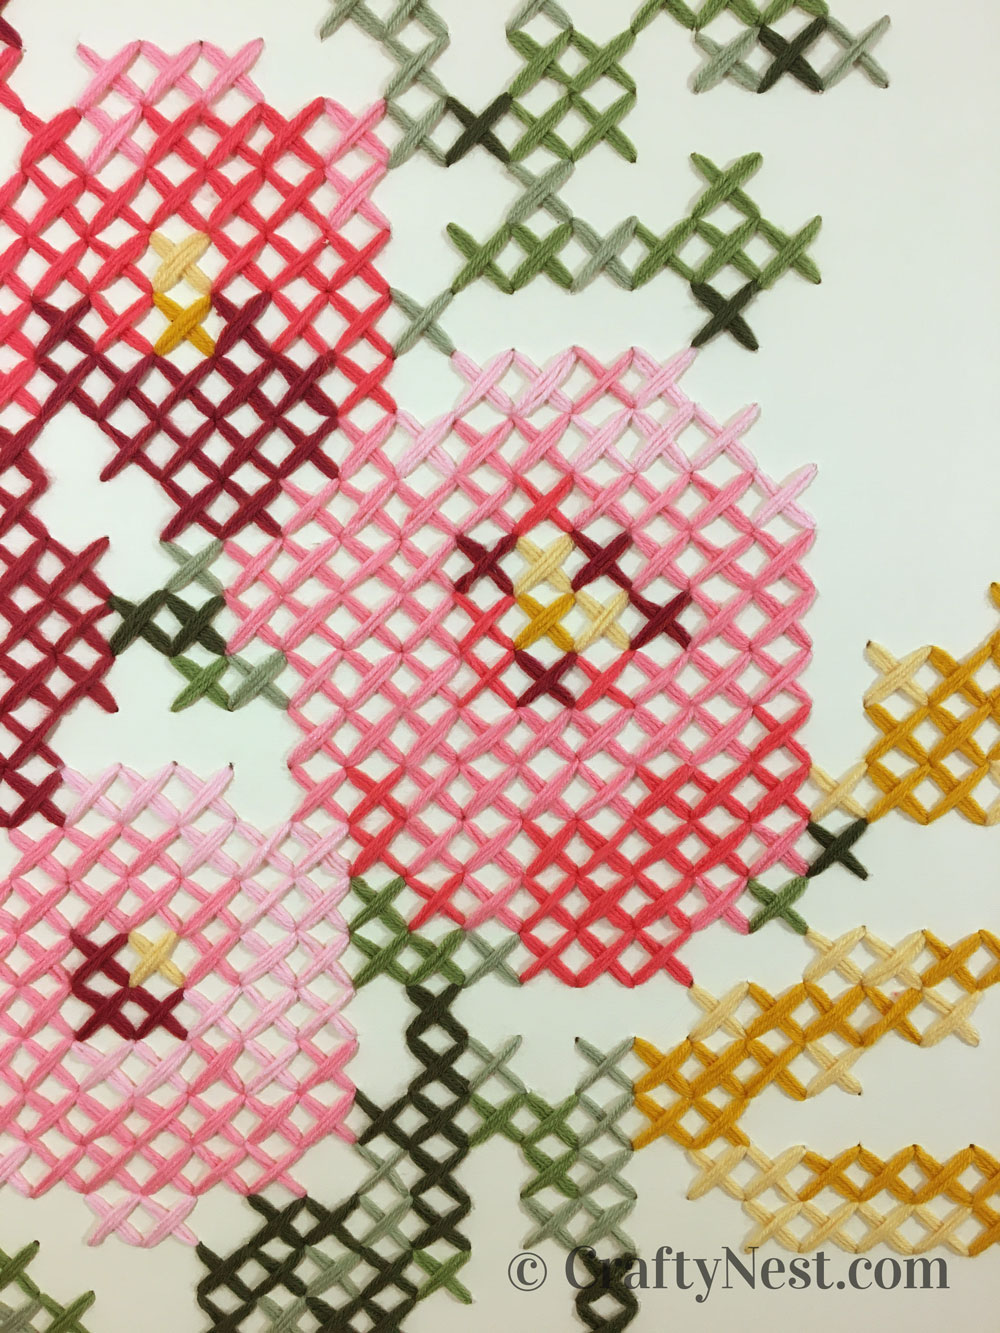 Closup of the cross-stich pattern, photo